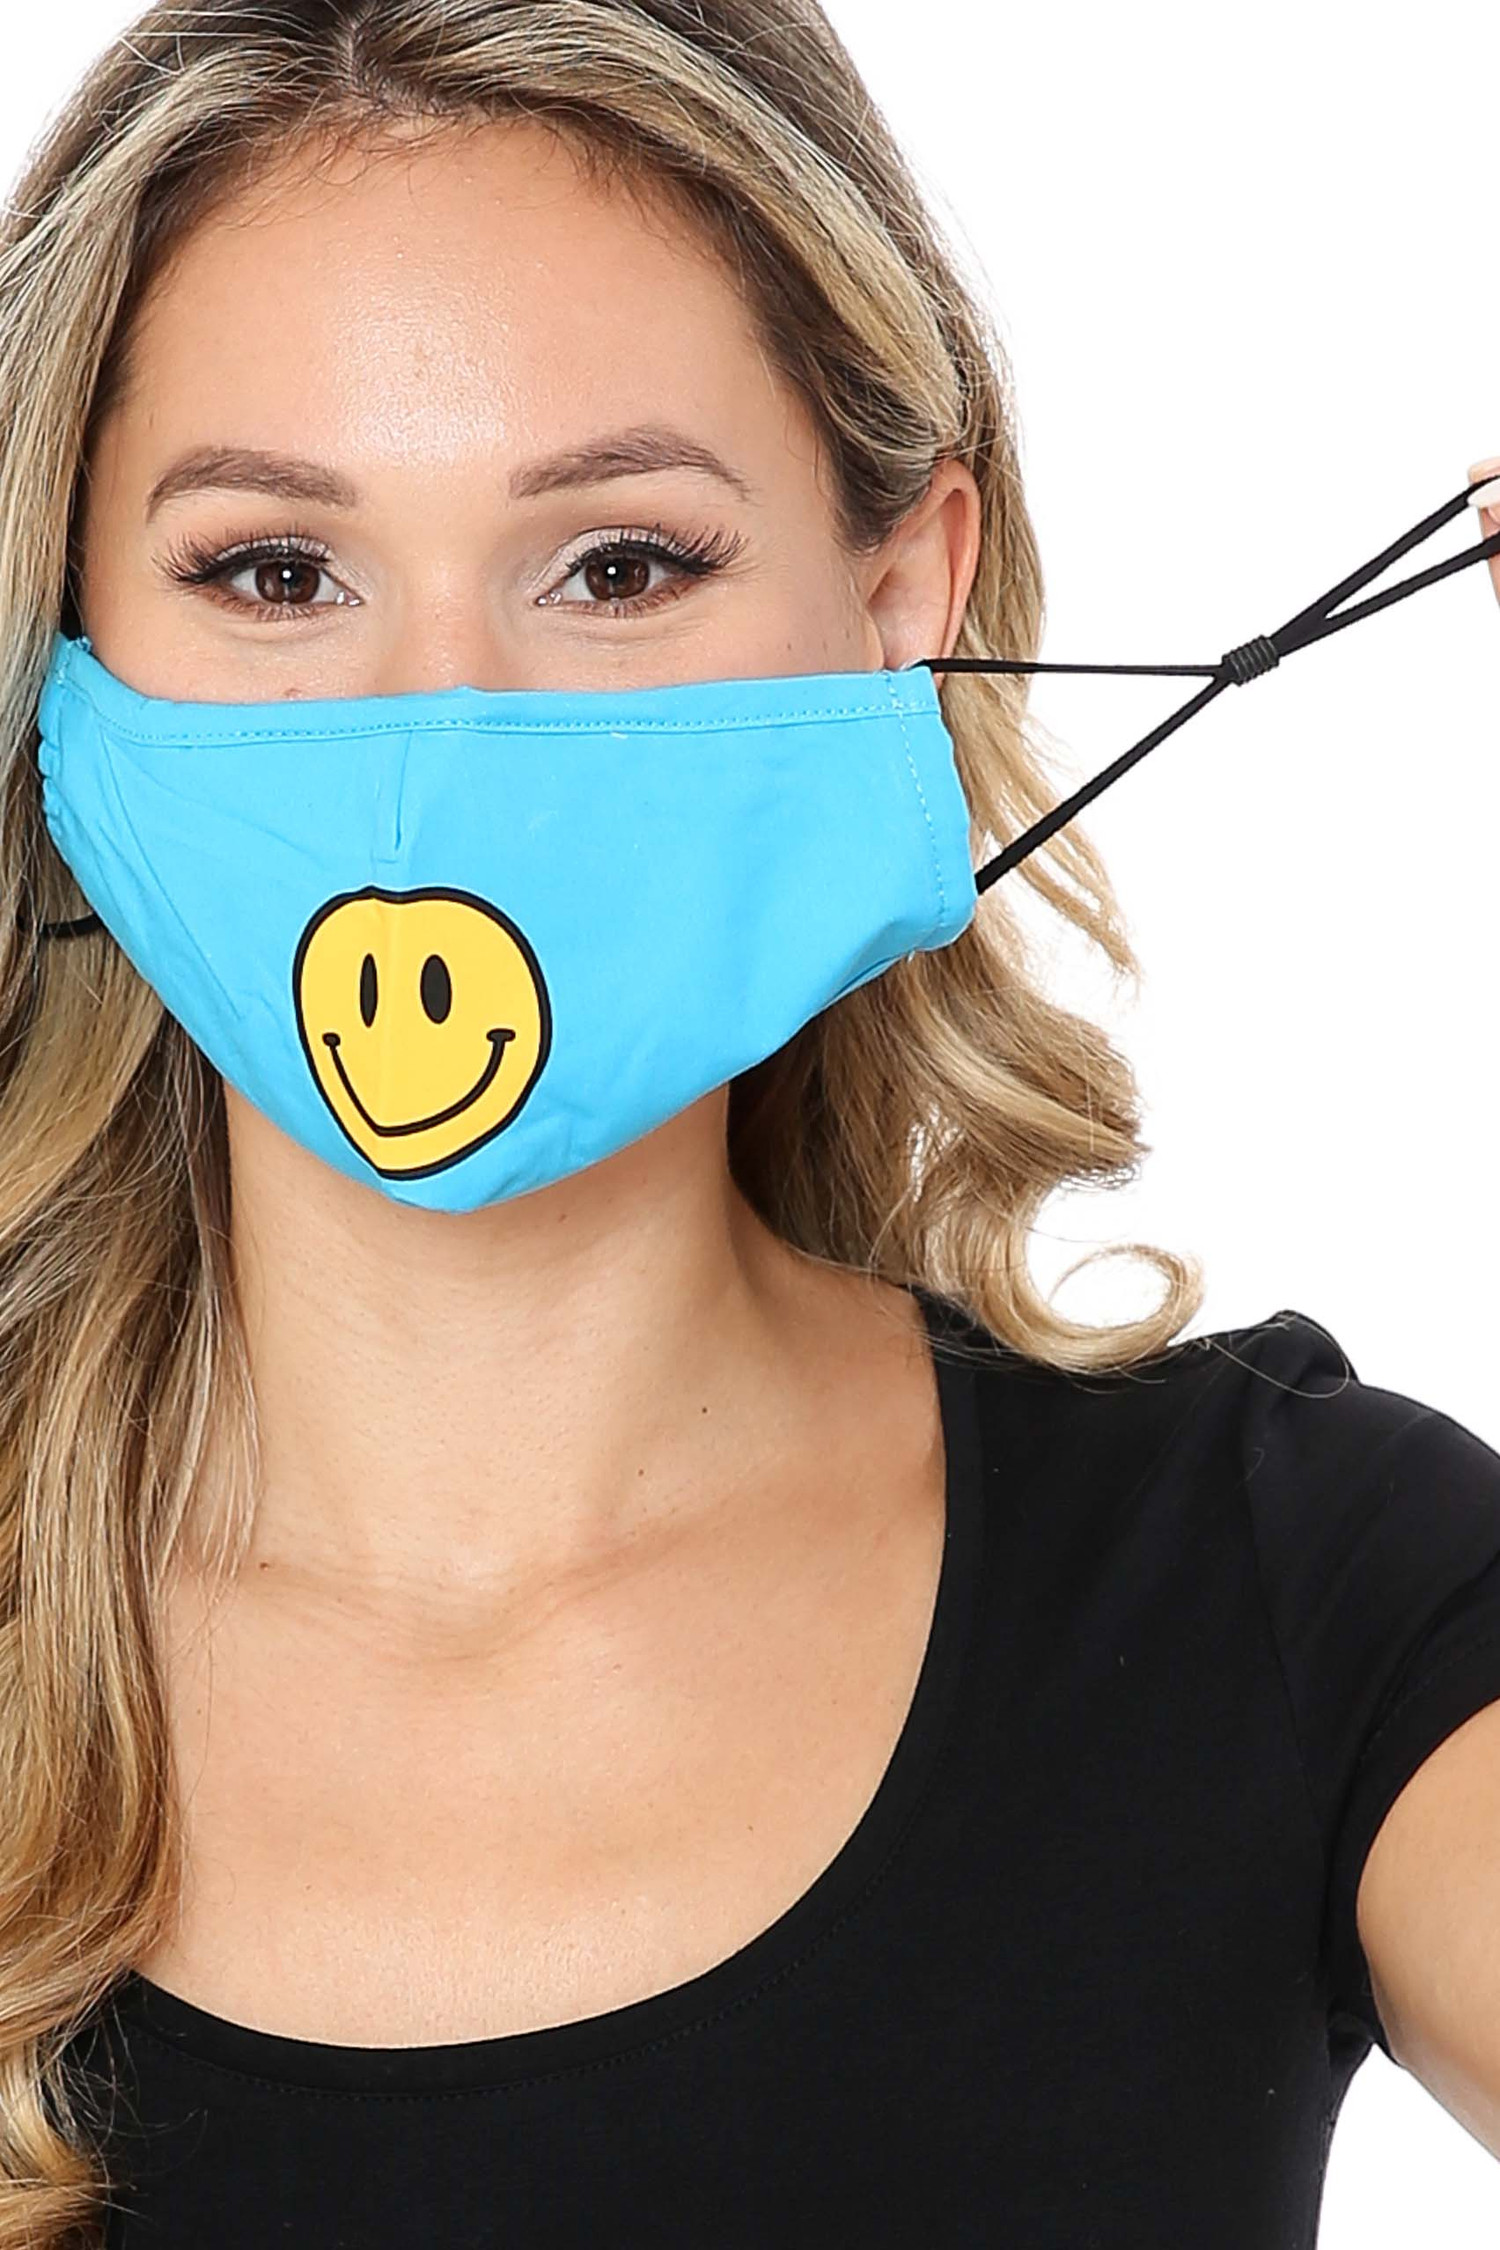 Ear Strings Bright Blue Smiley Face Mask with Built In Filter and Nose Bar